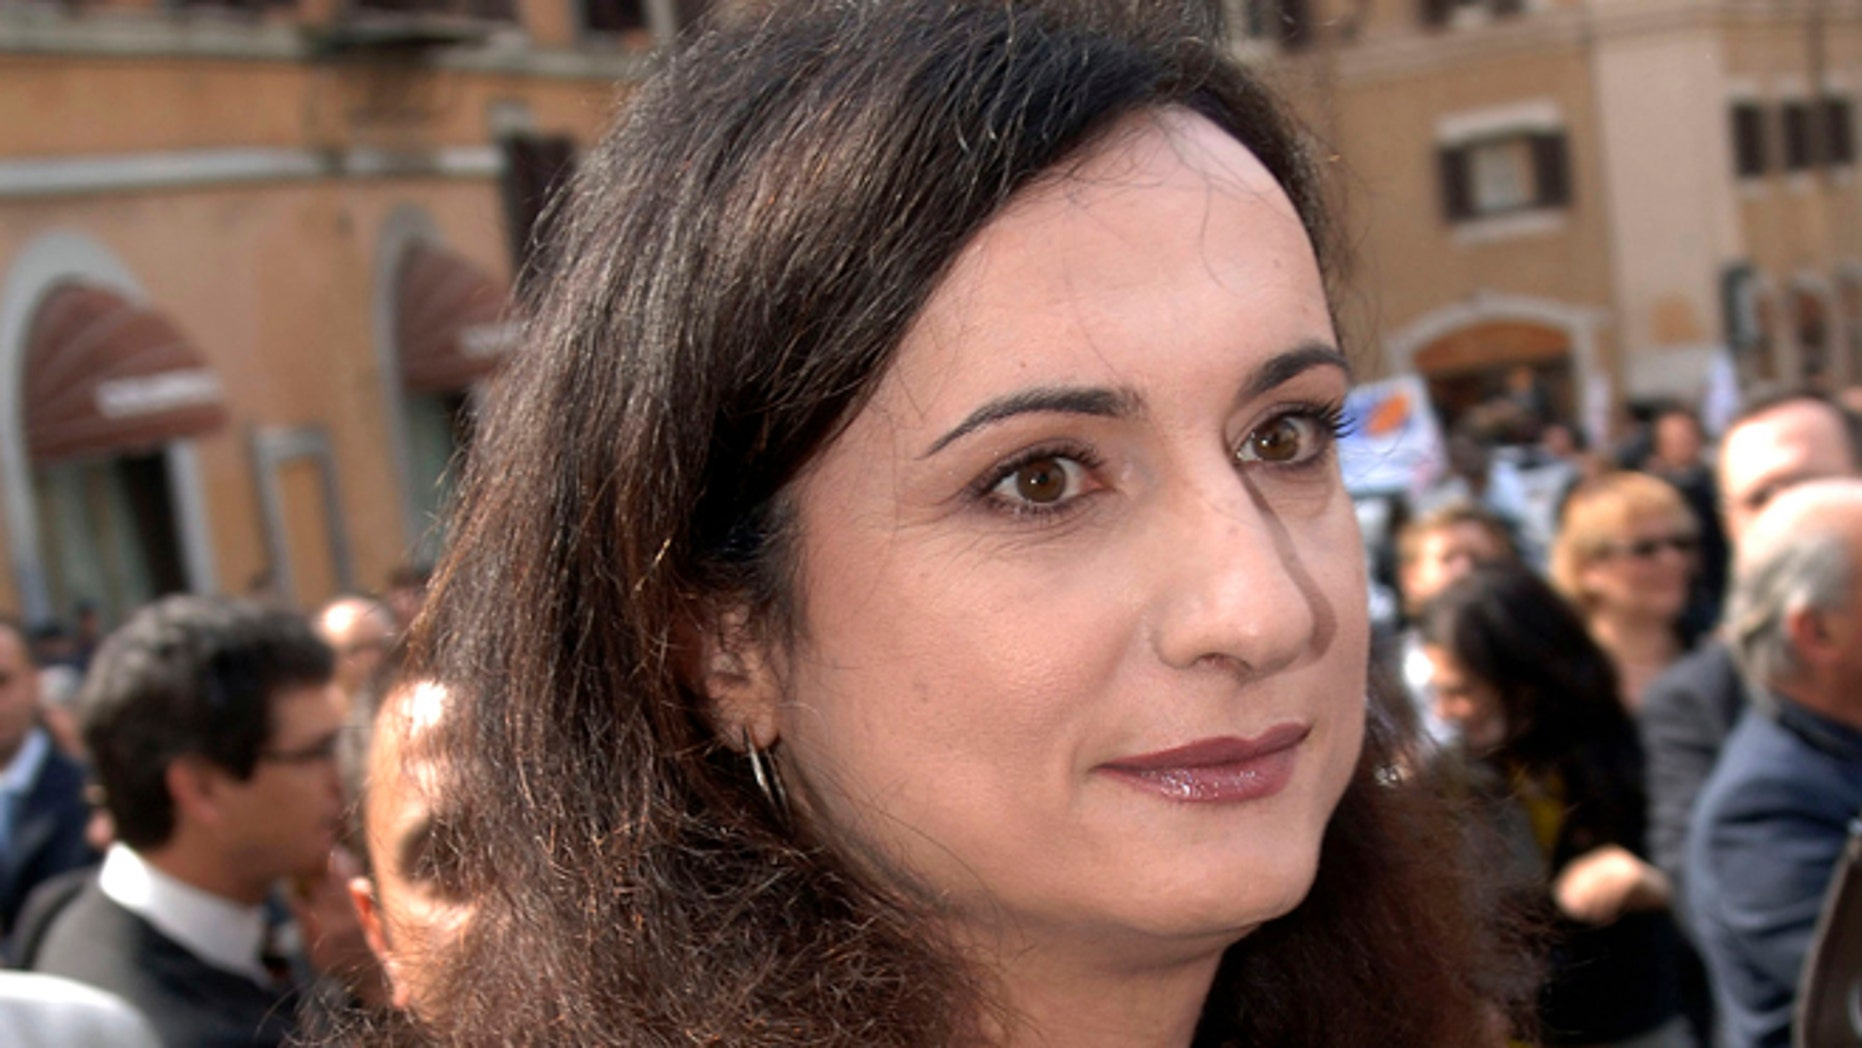 """April 28, 2006: In this file photo, then Italian Communist Refoundation Party lawmaker Vladimir Luxuria, Italy's first transgender lawmaker, arrives at the Lower Chamber in Rome. Italian Daily Corriere della Sera quoted an Italian advocate for gay rights, Imma Battaglia, as saying Luxuria called to say she was arrested by police in Sochi while attending the 2014 Games with a flag with the slogan, in Russian, """"Gay is OK."""""""